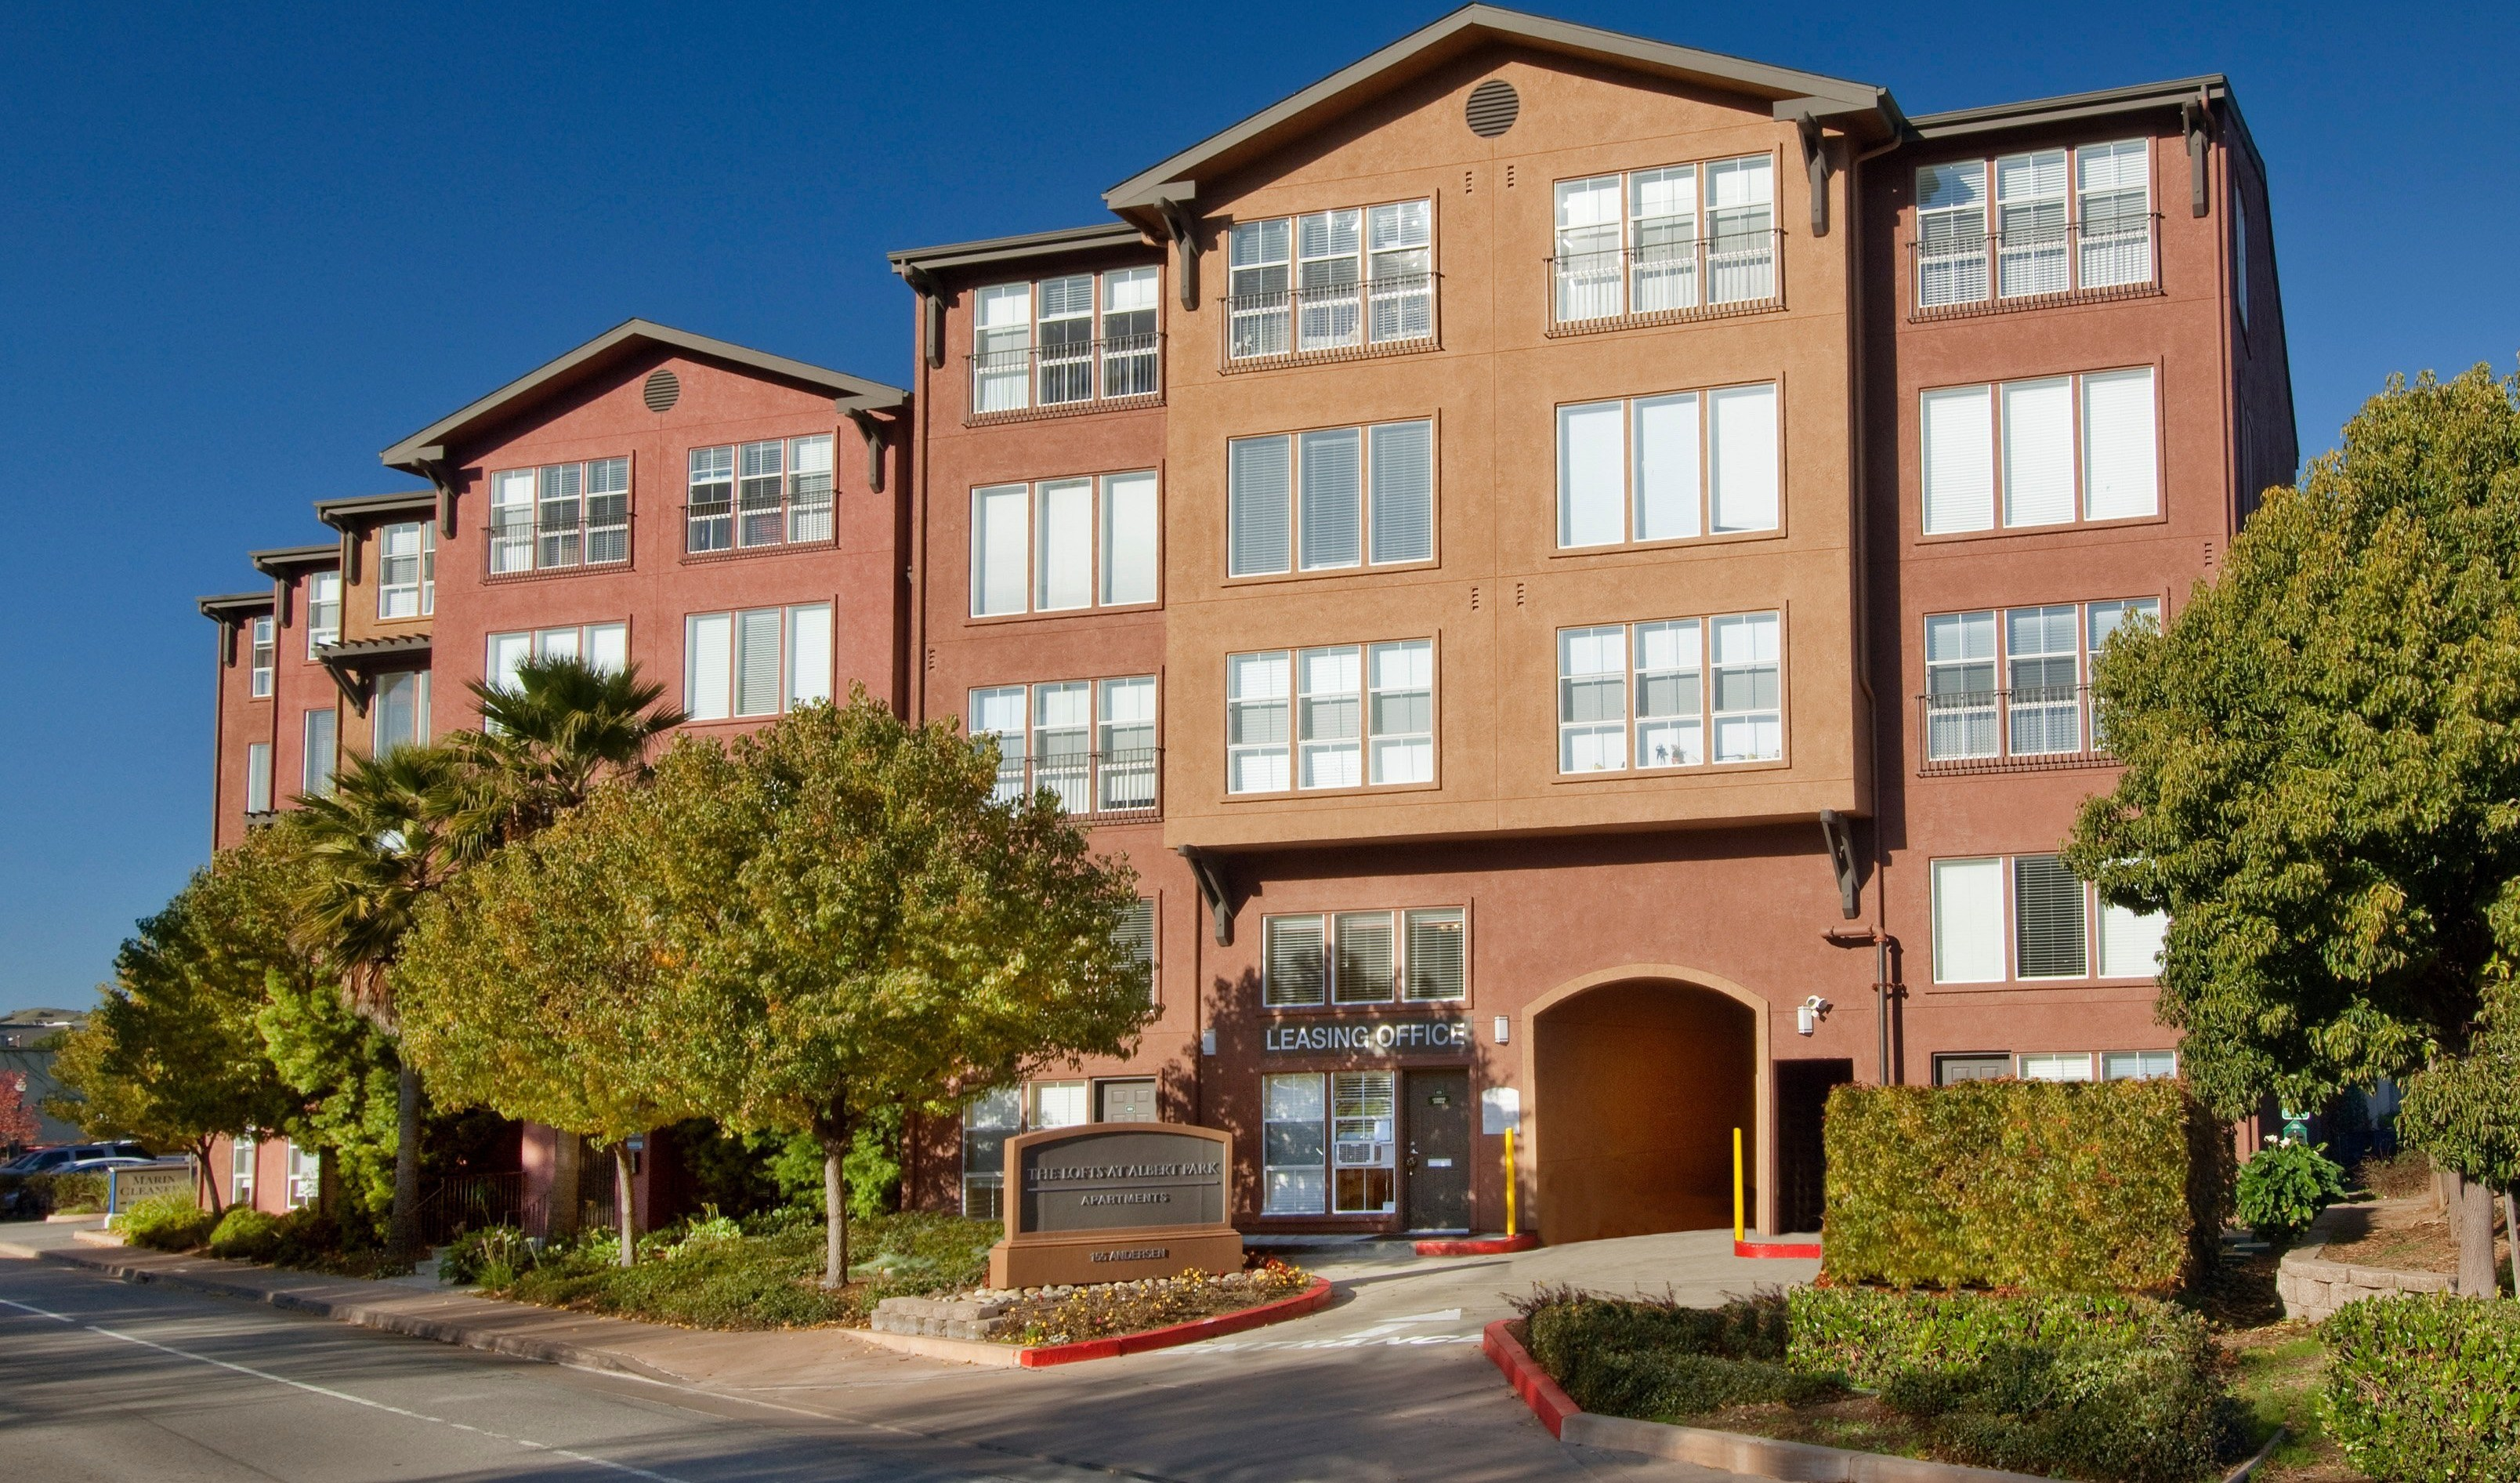 20 Best Apartments In San Rafael CA with pictures